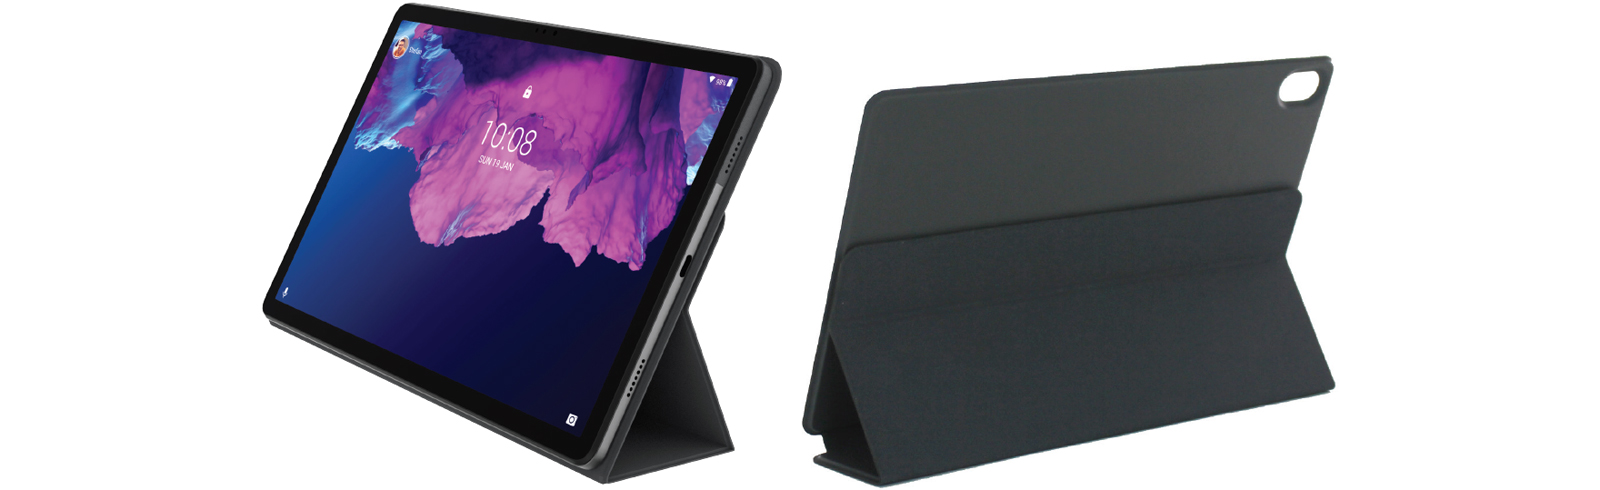 """Lenovo unveils the Tab P11 tablet with an 11"""" IPS FHD+ display, Snapdragon 662 chipset, quad speakers"""